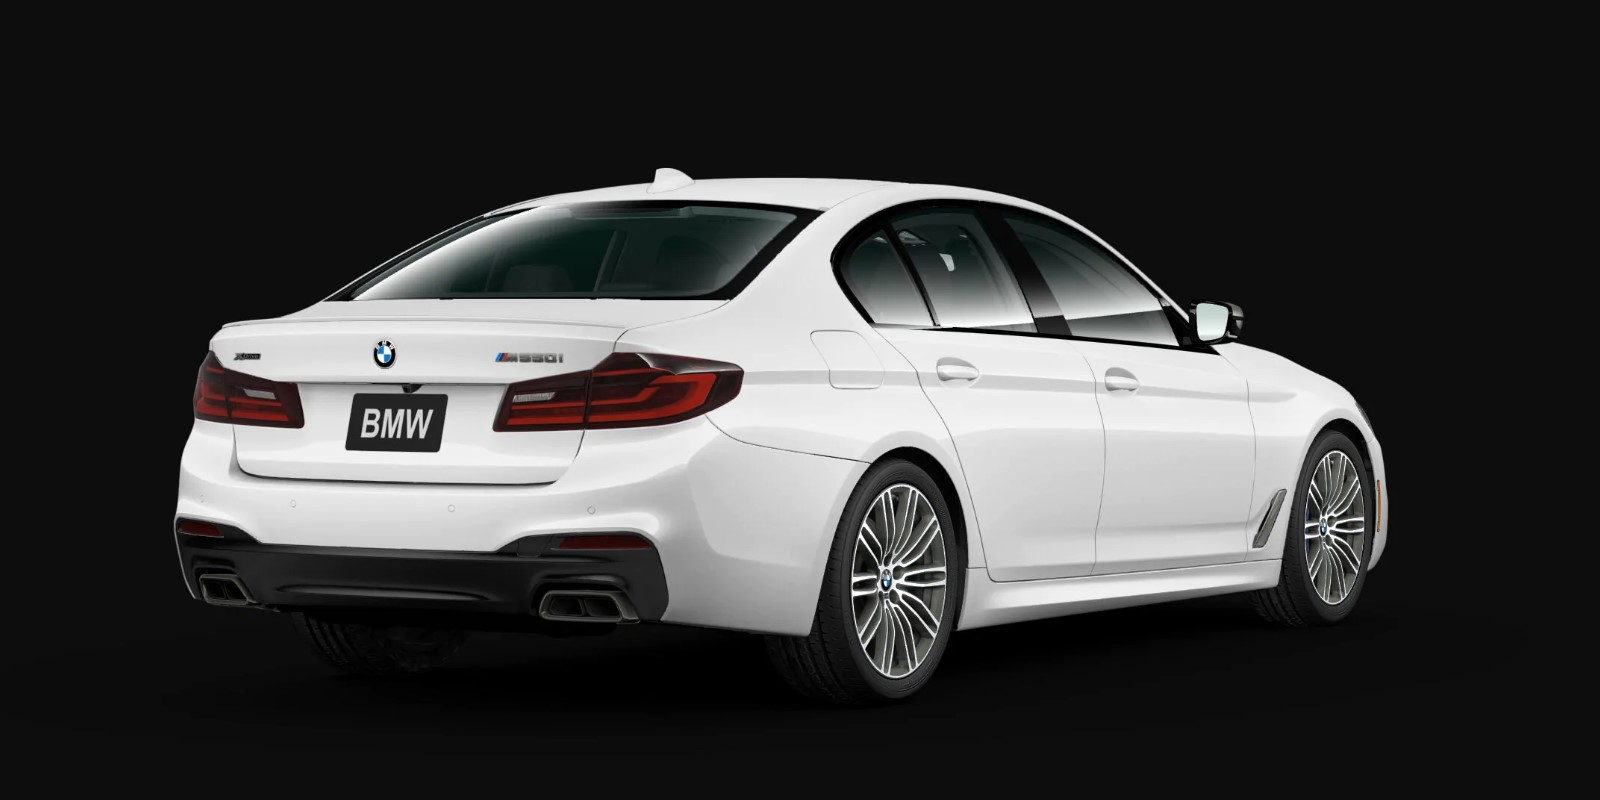 2020 BMW 5 Series M550i xDrive White Exterior Rear View